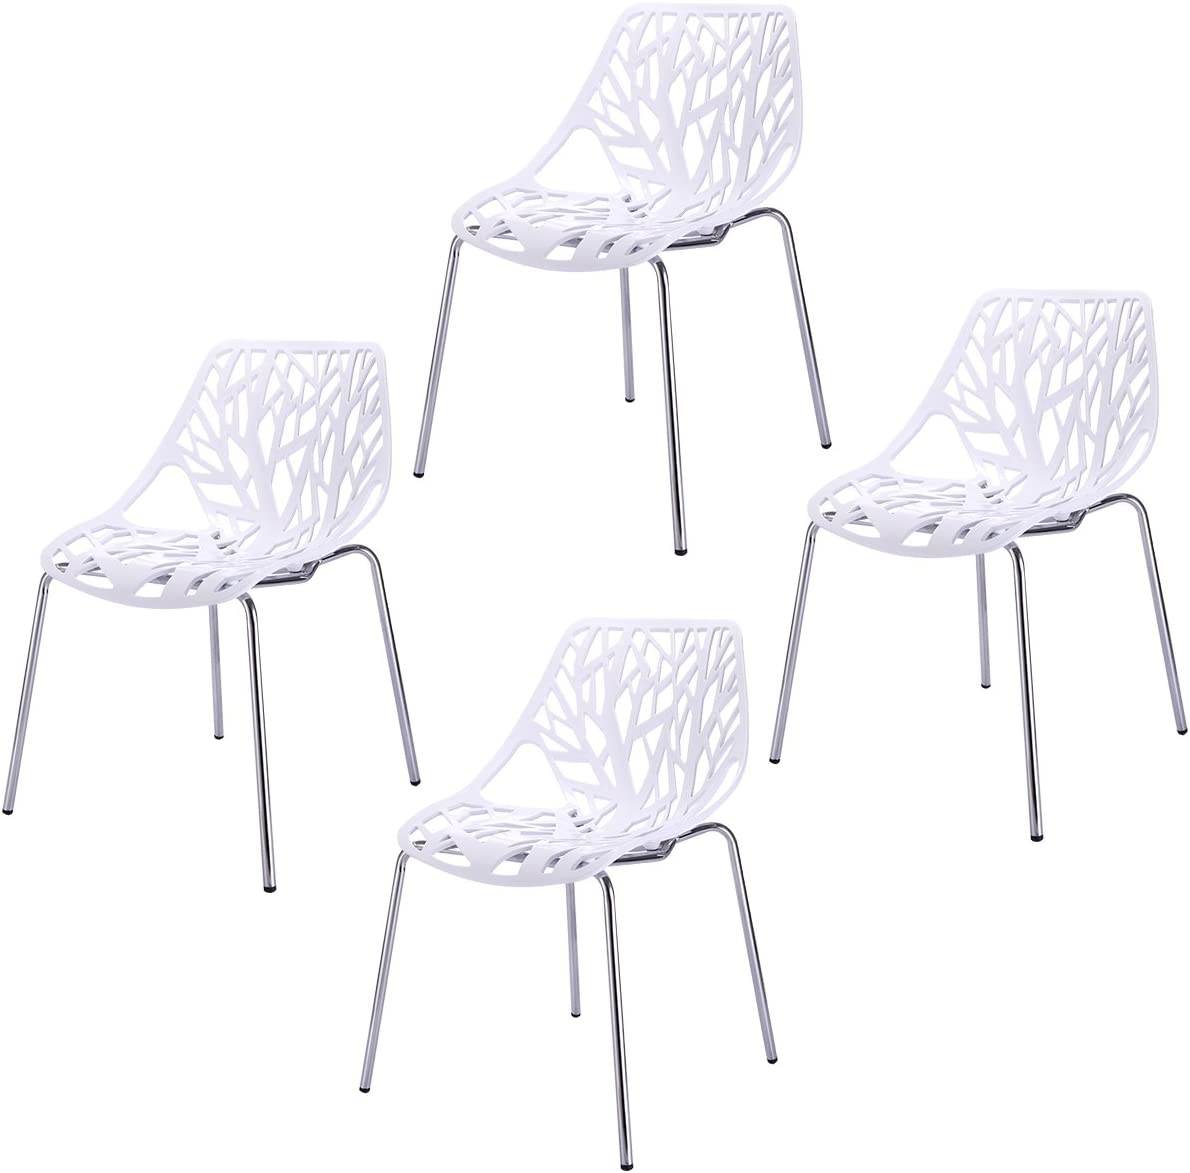 Sandinrayli Set of 4 White Side Dining Chair 18 Height Birds Nest Chairs for Dining Room Waiting Room Kitchen Living Room